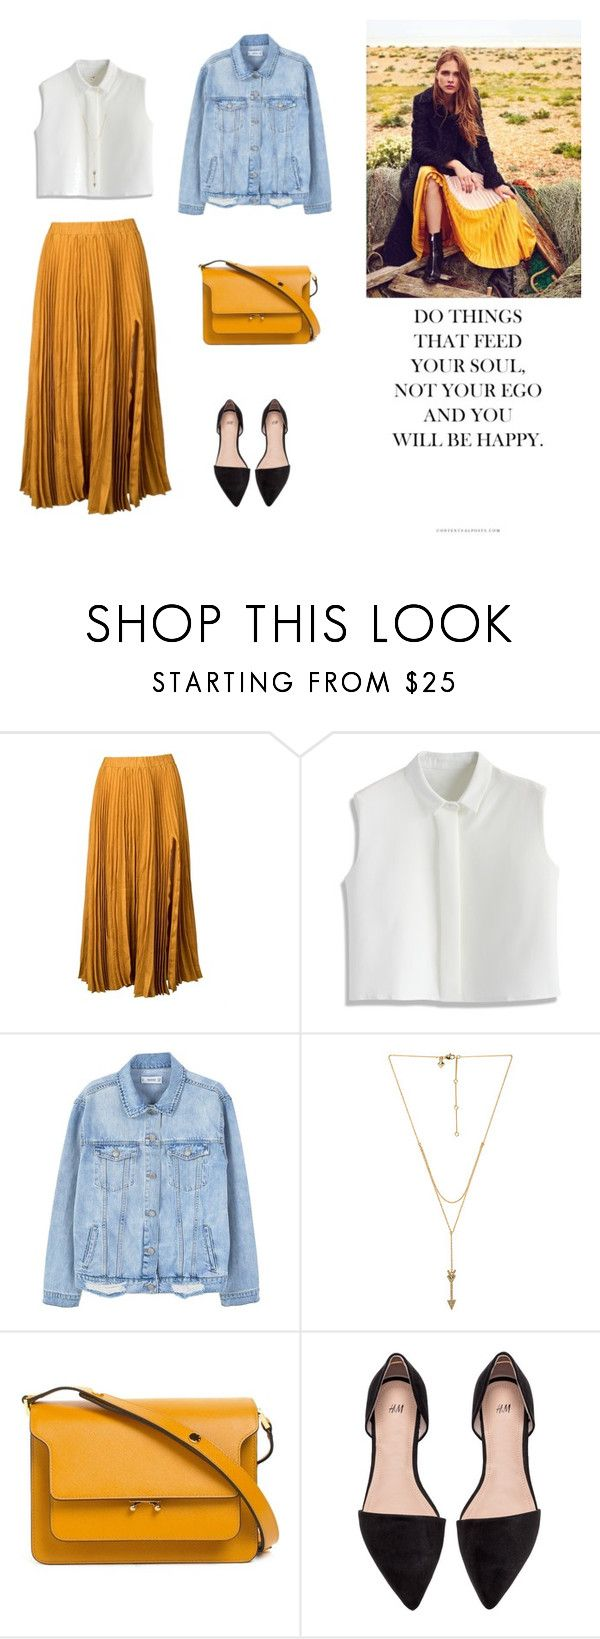 """13/04"" by dorey on Polyvore featuring Kaelen, Chicwish, MANGO, Rebecca Minkoff and Marni"